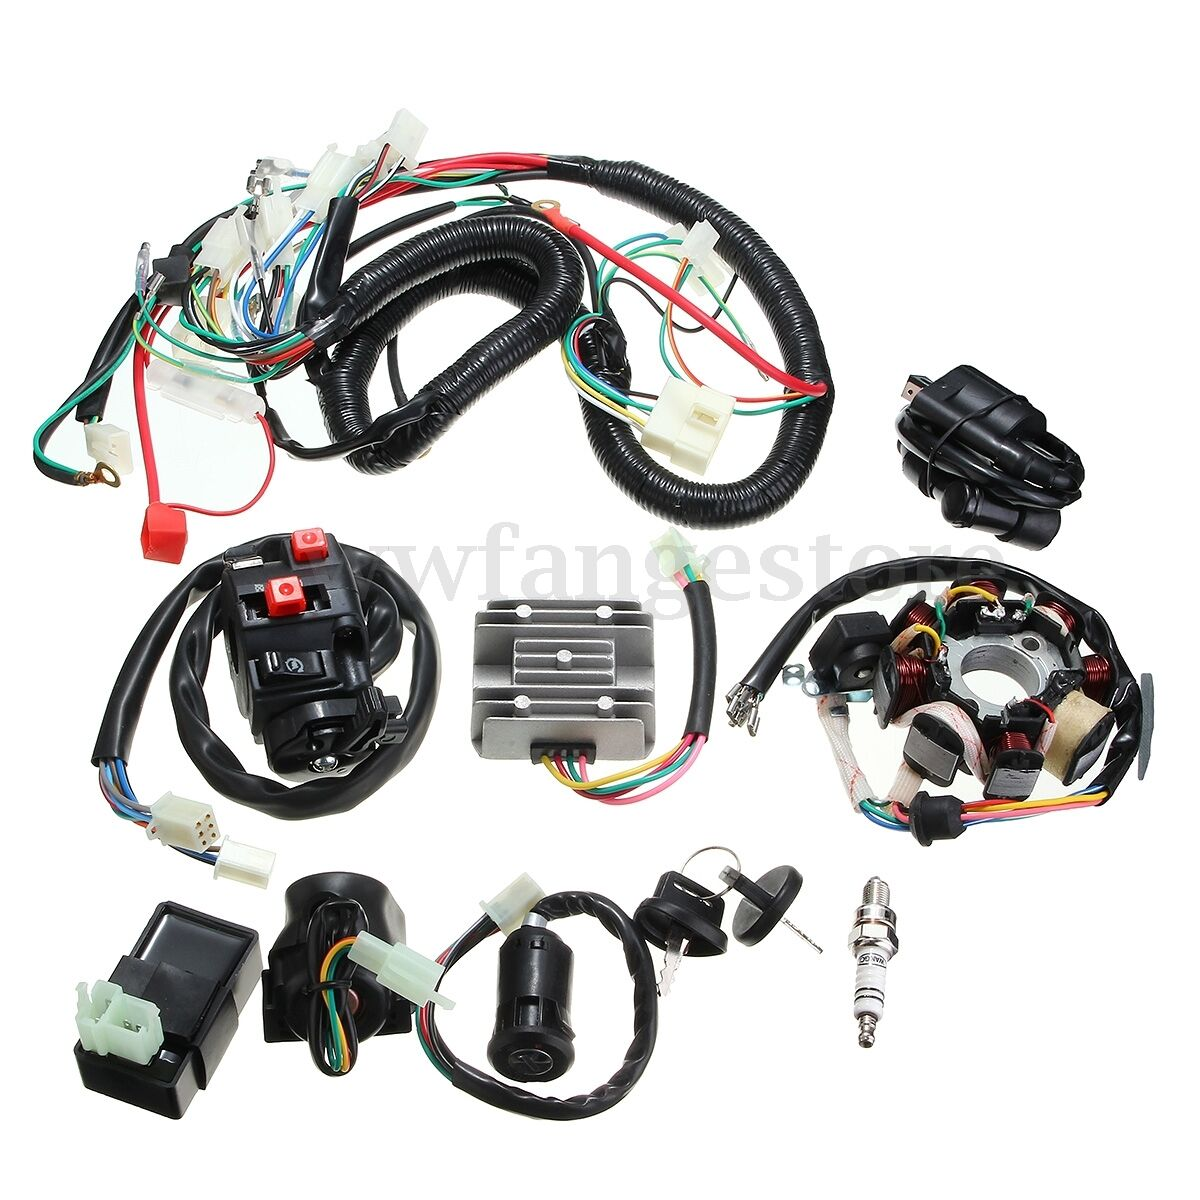 Full Wiring Harness Loom Solenoid Coil Regulator CDI 150 200 250cc on